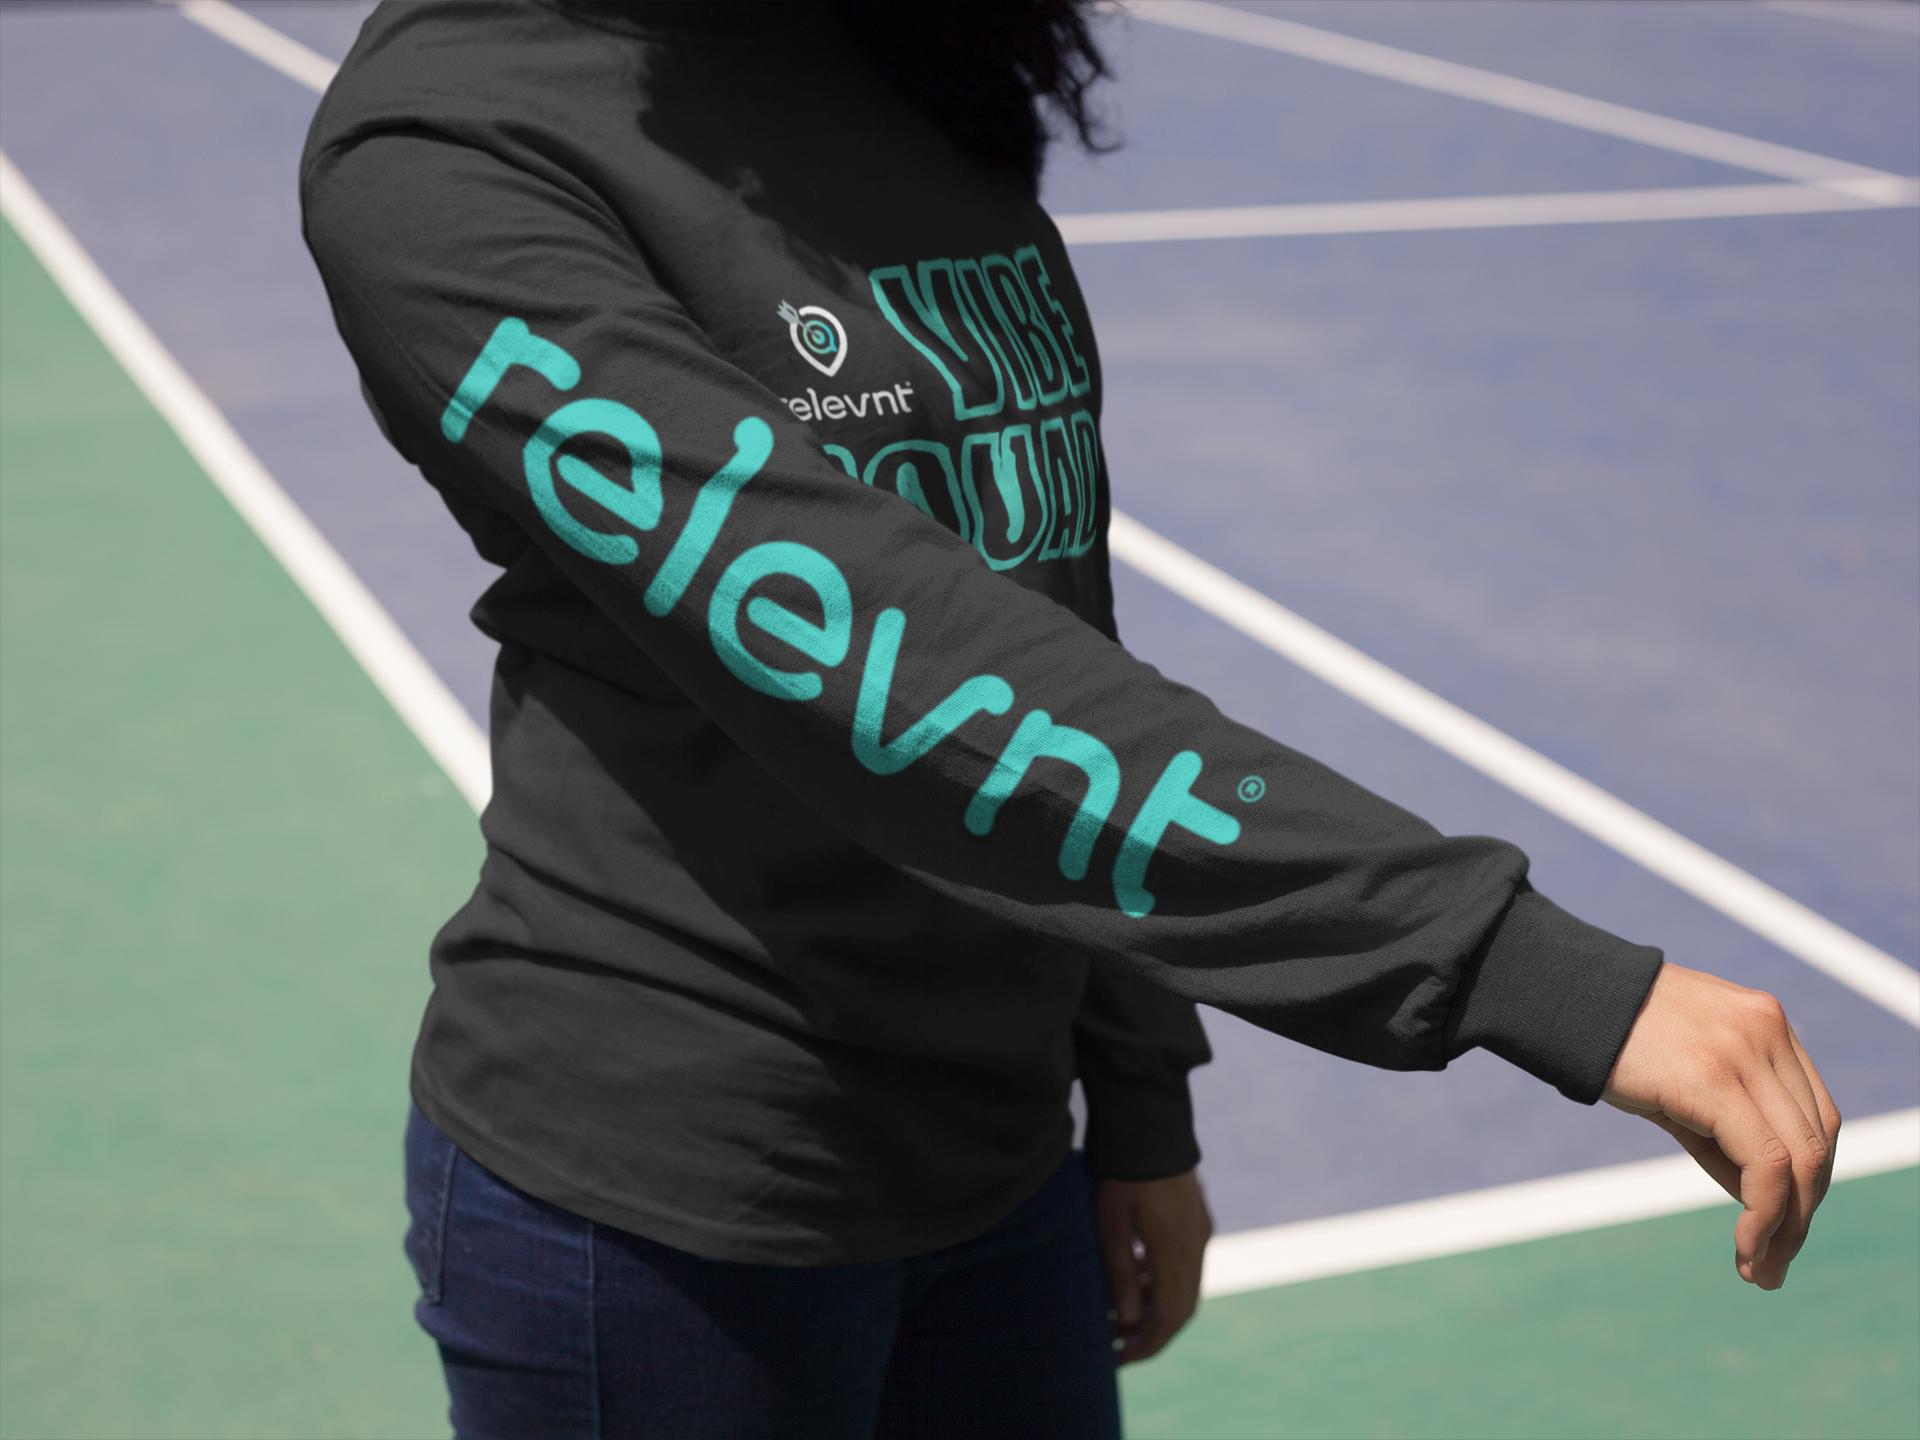 girl-showing-her-right-arm-while-wearing-a-long-sleeve-tshirt-mockup-at-a-tennis-court-a15980.png